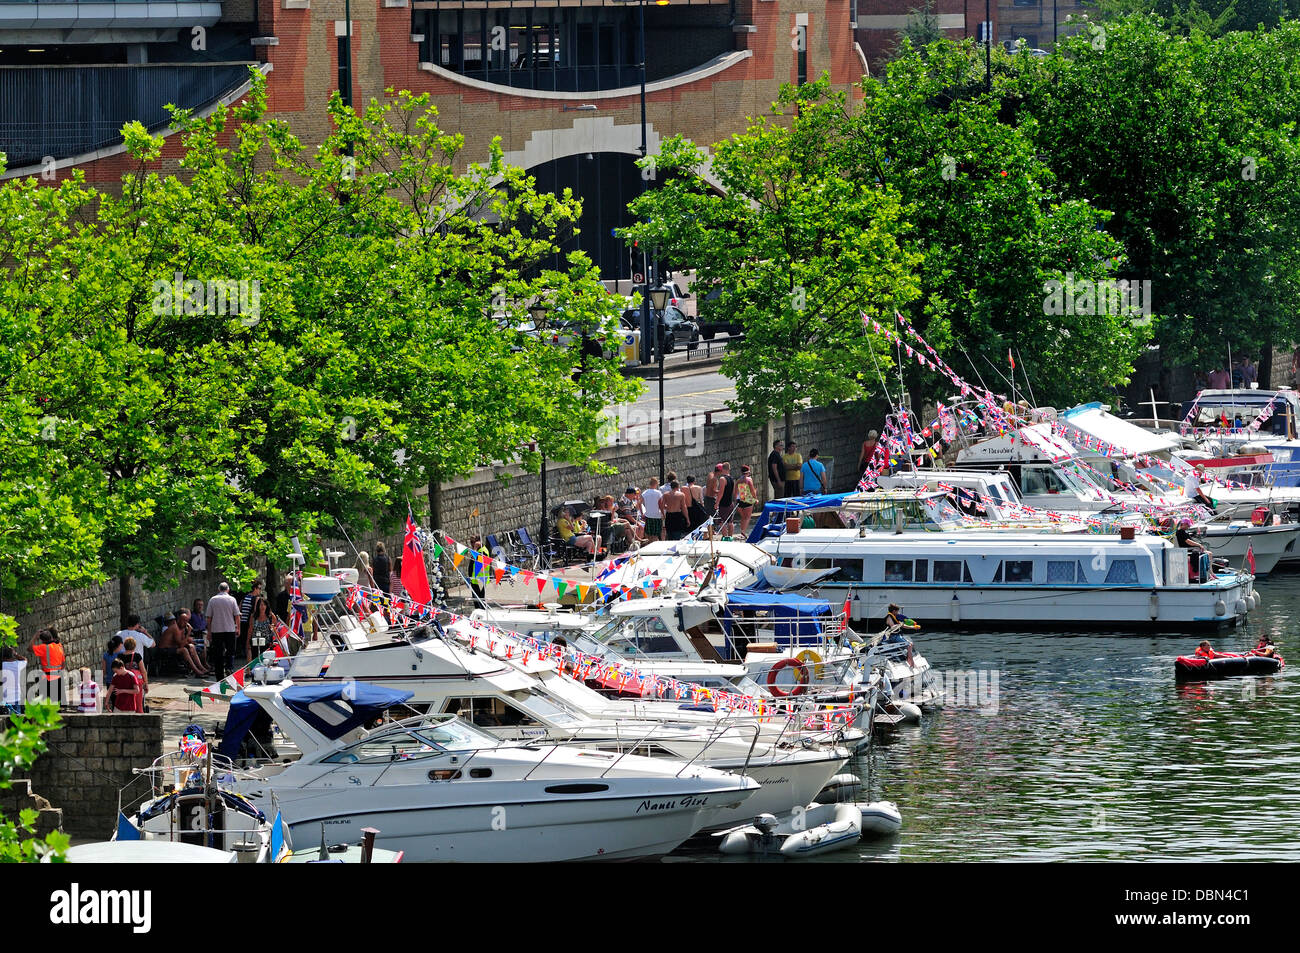 Maidstone, Kent, England, UK. Annual Maidstone River Festival (July 27th 2013) Boats moored along the bank of the Stock Photo